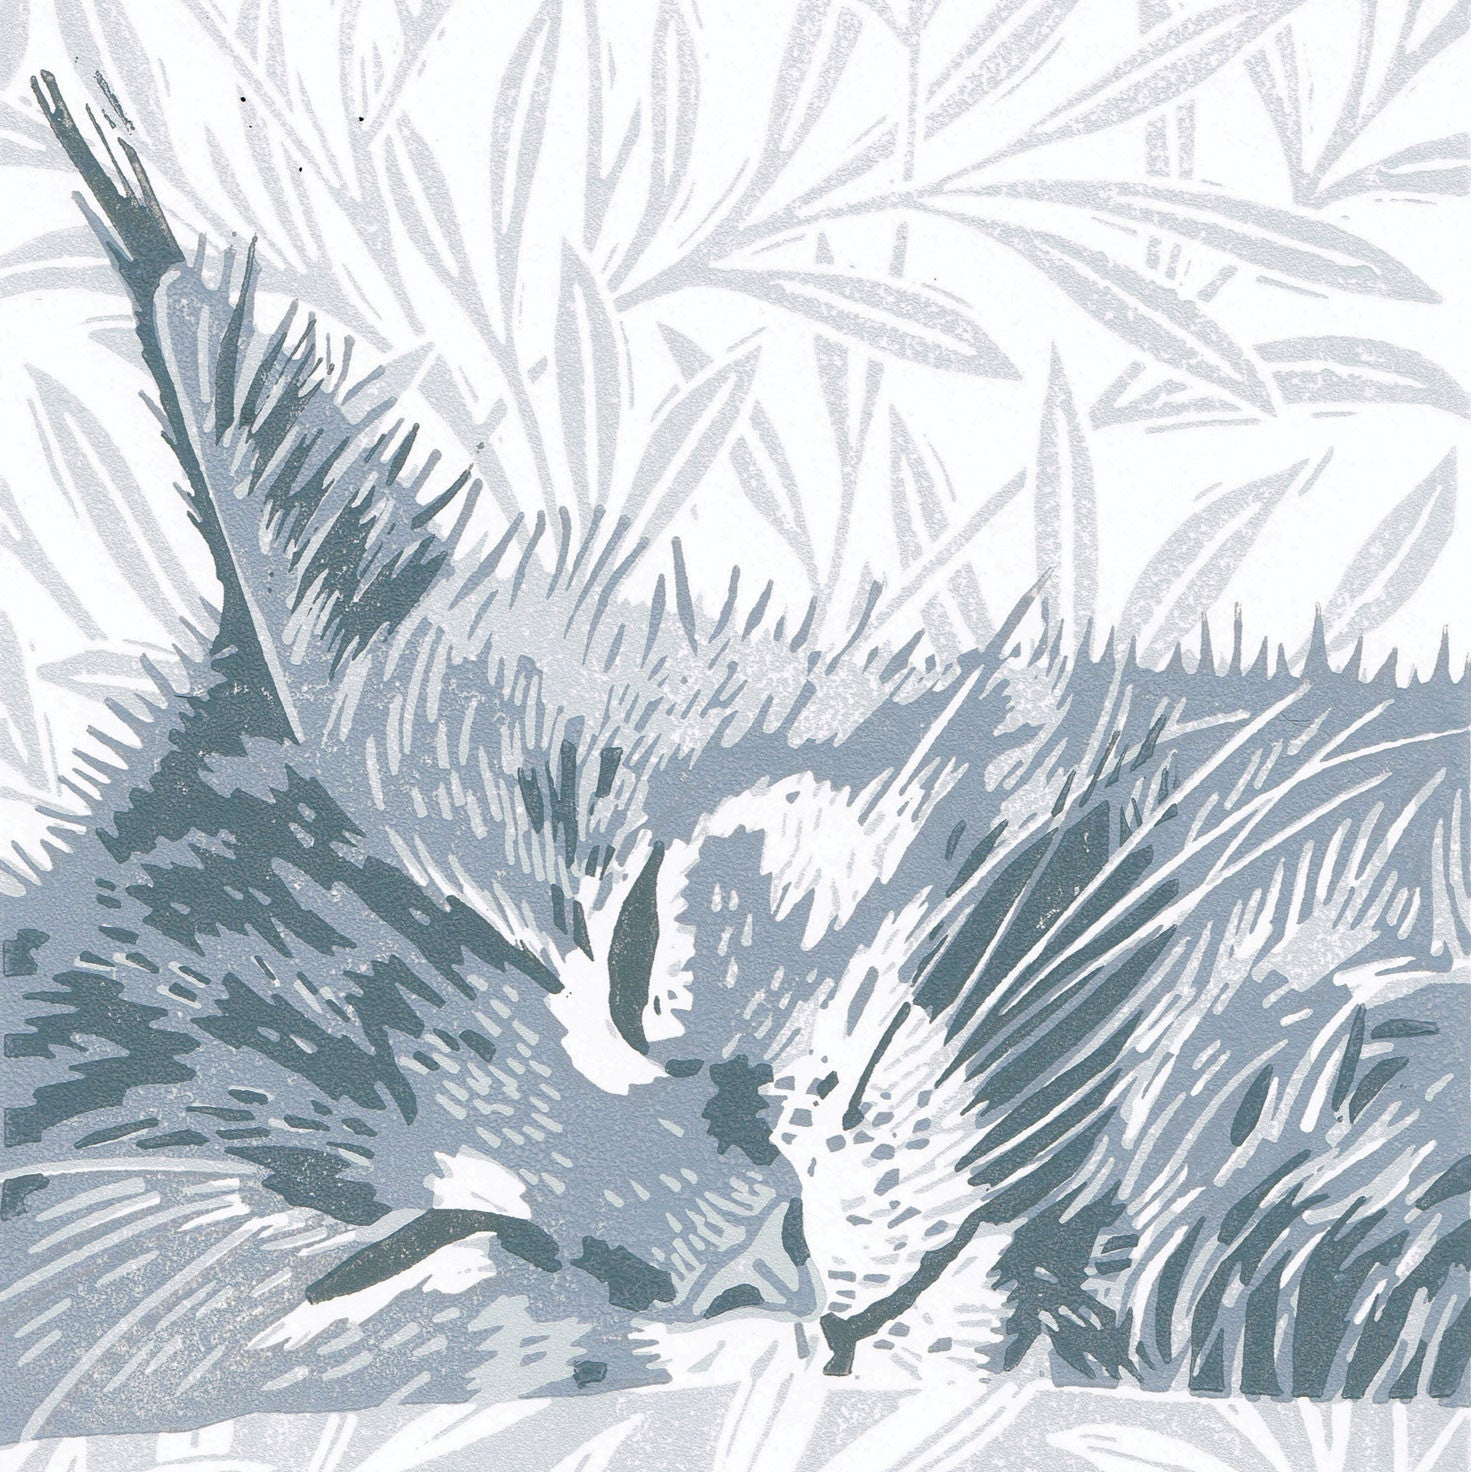 Grey Maine Coon Cat by Little Ram Studio, Art Greeting Card, Linocut, Maine Coon cat dozing on pillow